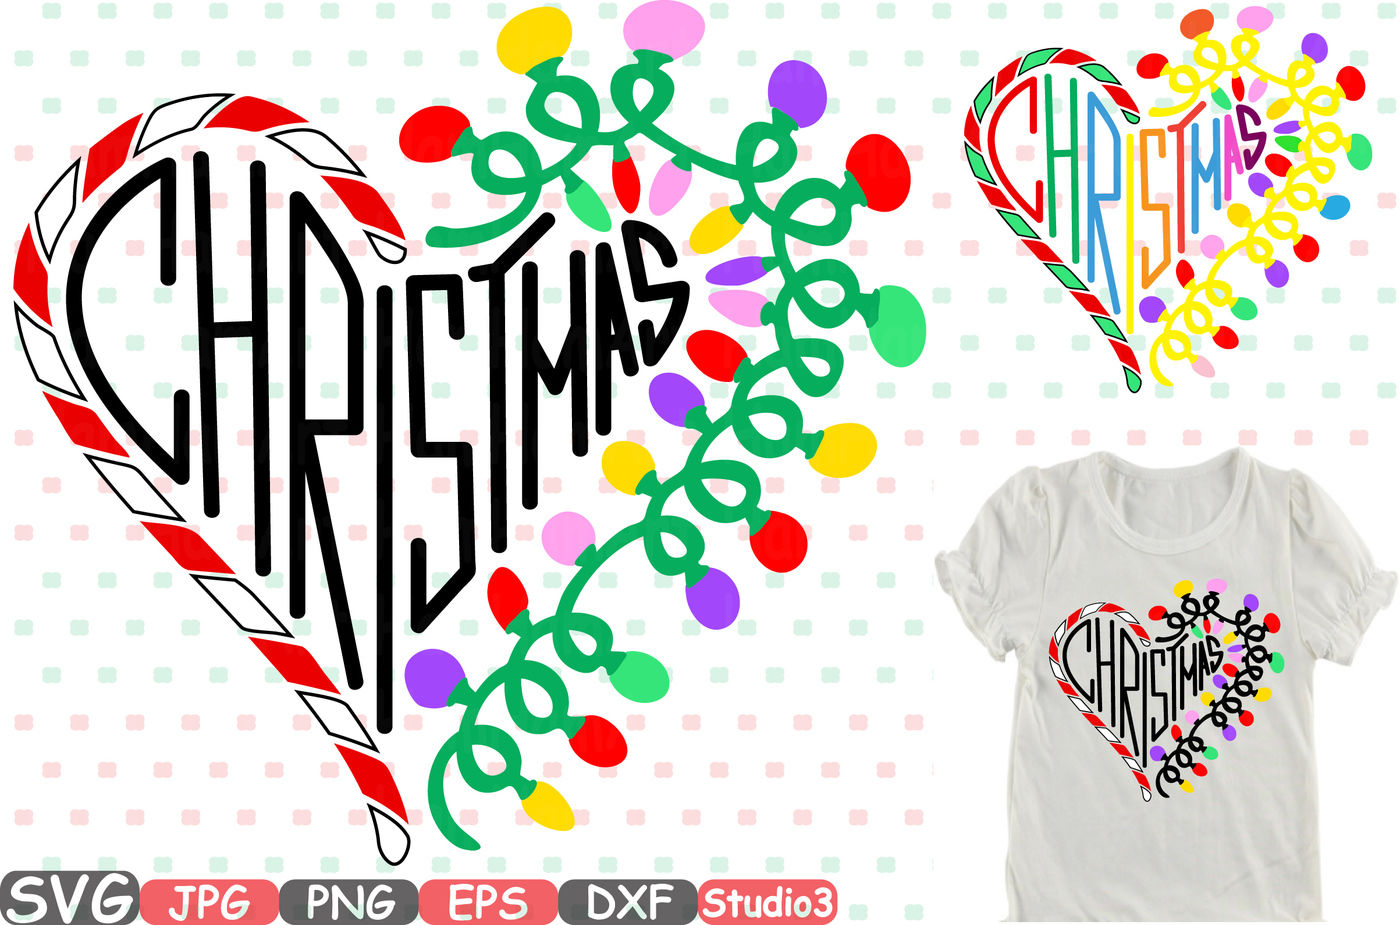 Christmas Heart Png.Christmas Heart Silhouette Svg Cutting Files Digital Clip